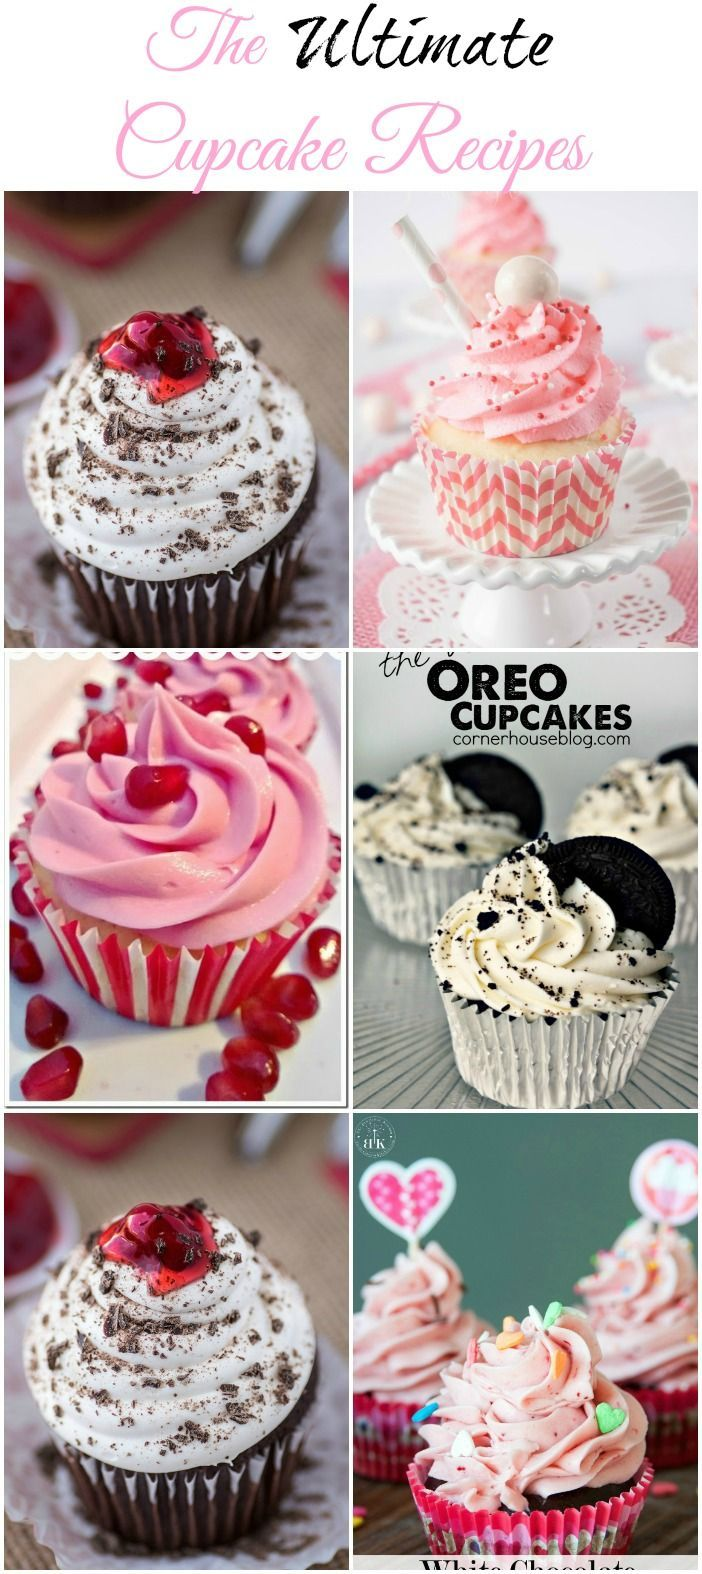 The Ultimate Cupcake Recipes collected by The NY Melrose Family